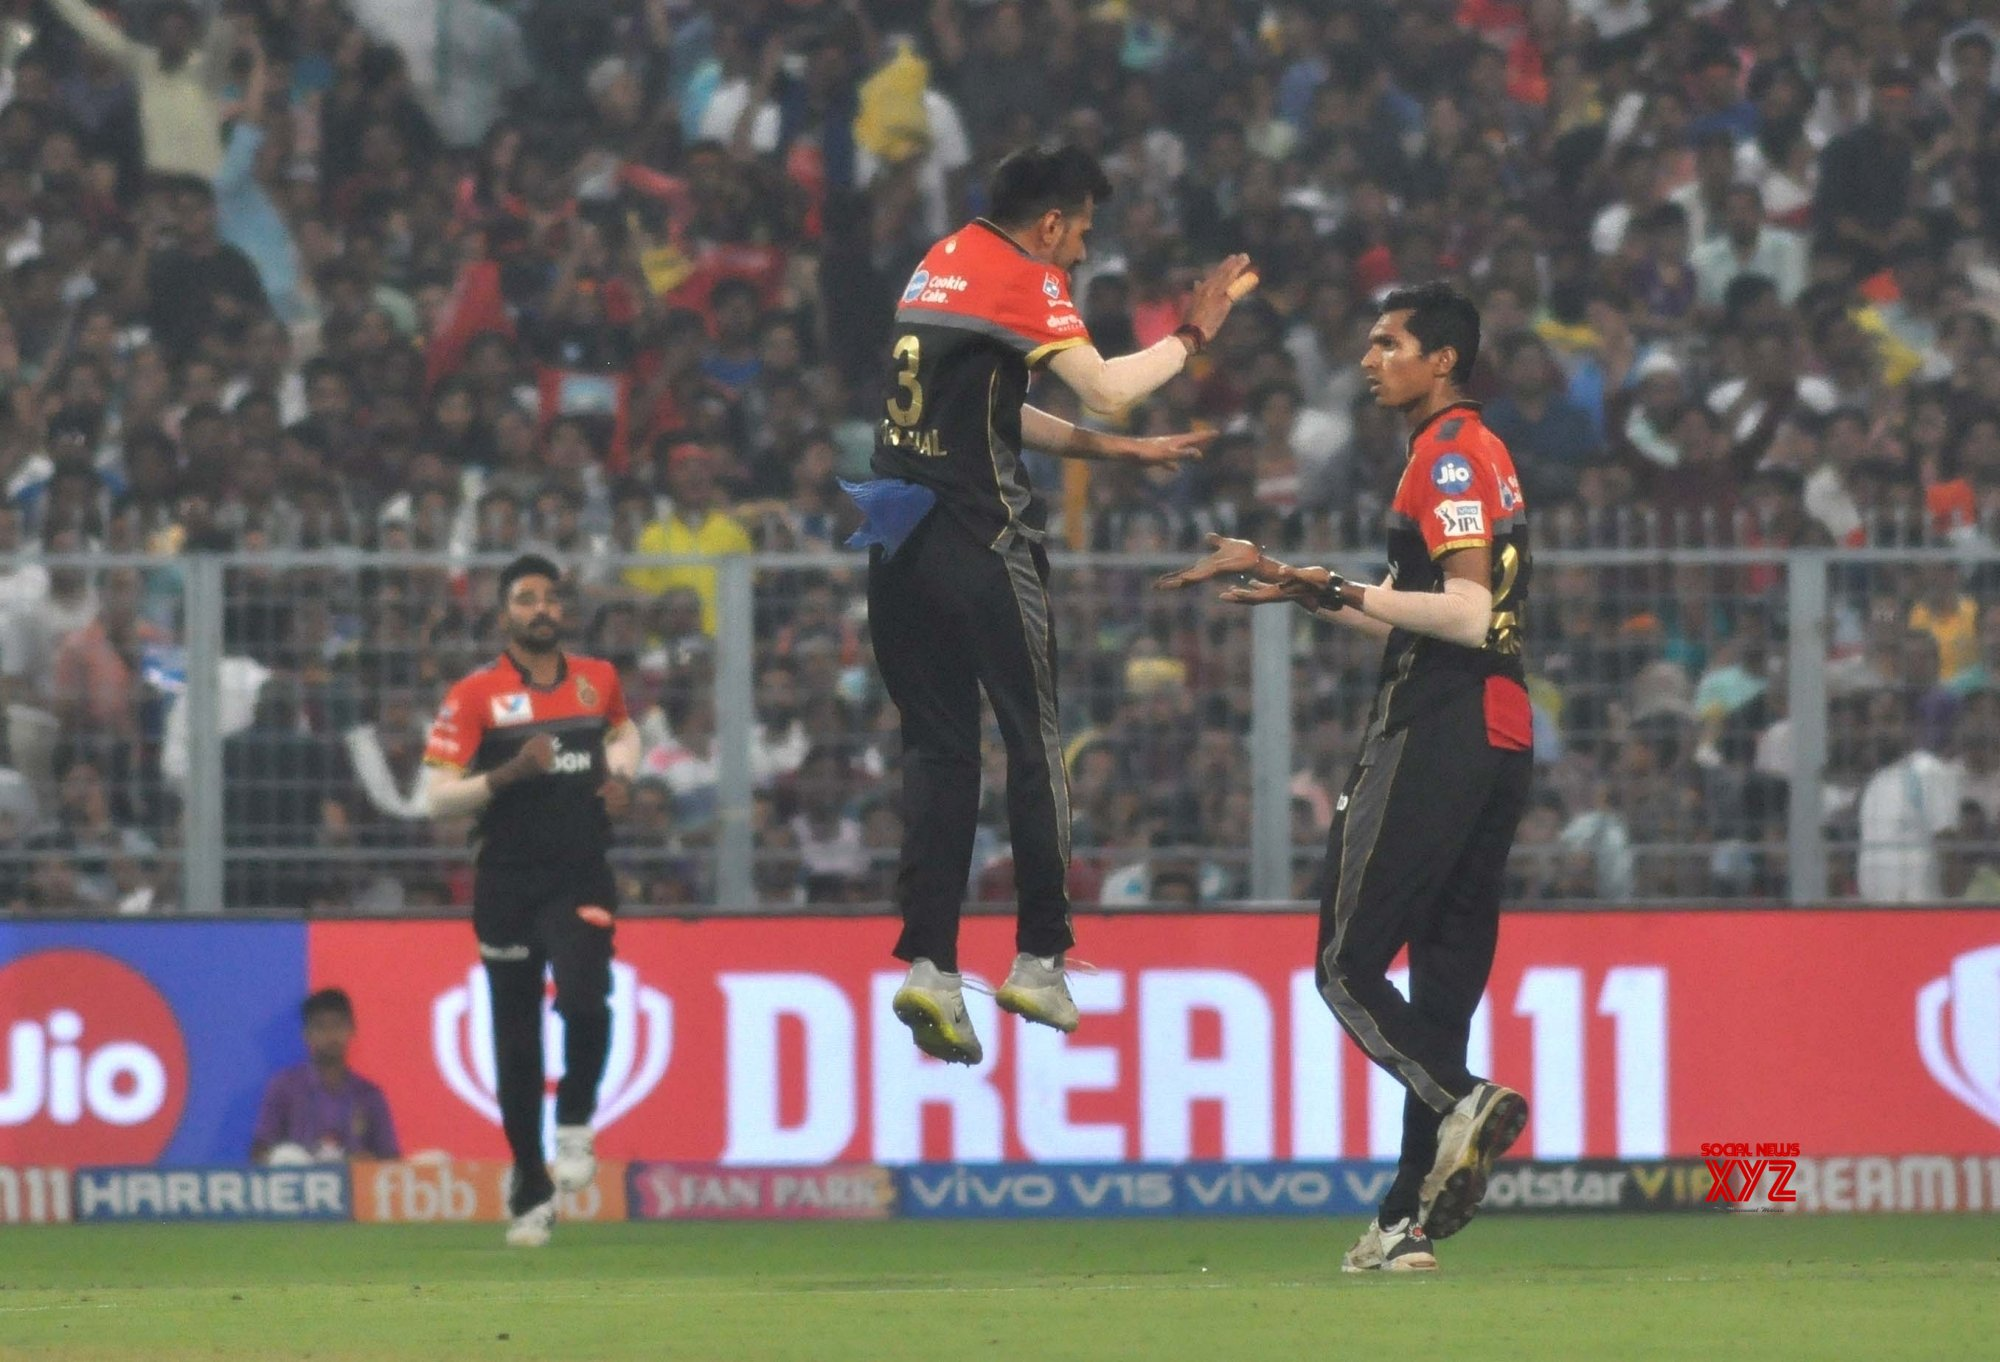 Kolkata: IPL 2019 - Match 35 - Kolkata Knight Riders Vs Royal Challengers Bangalore (Batch - 17) #Gallery